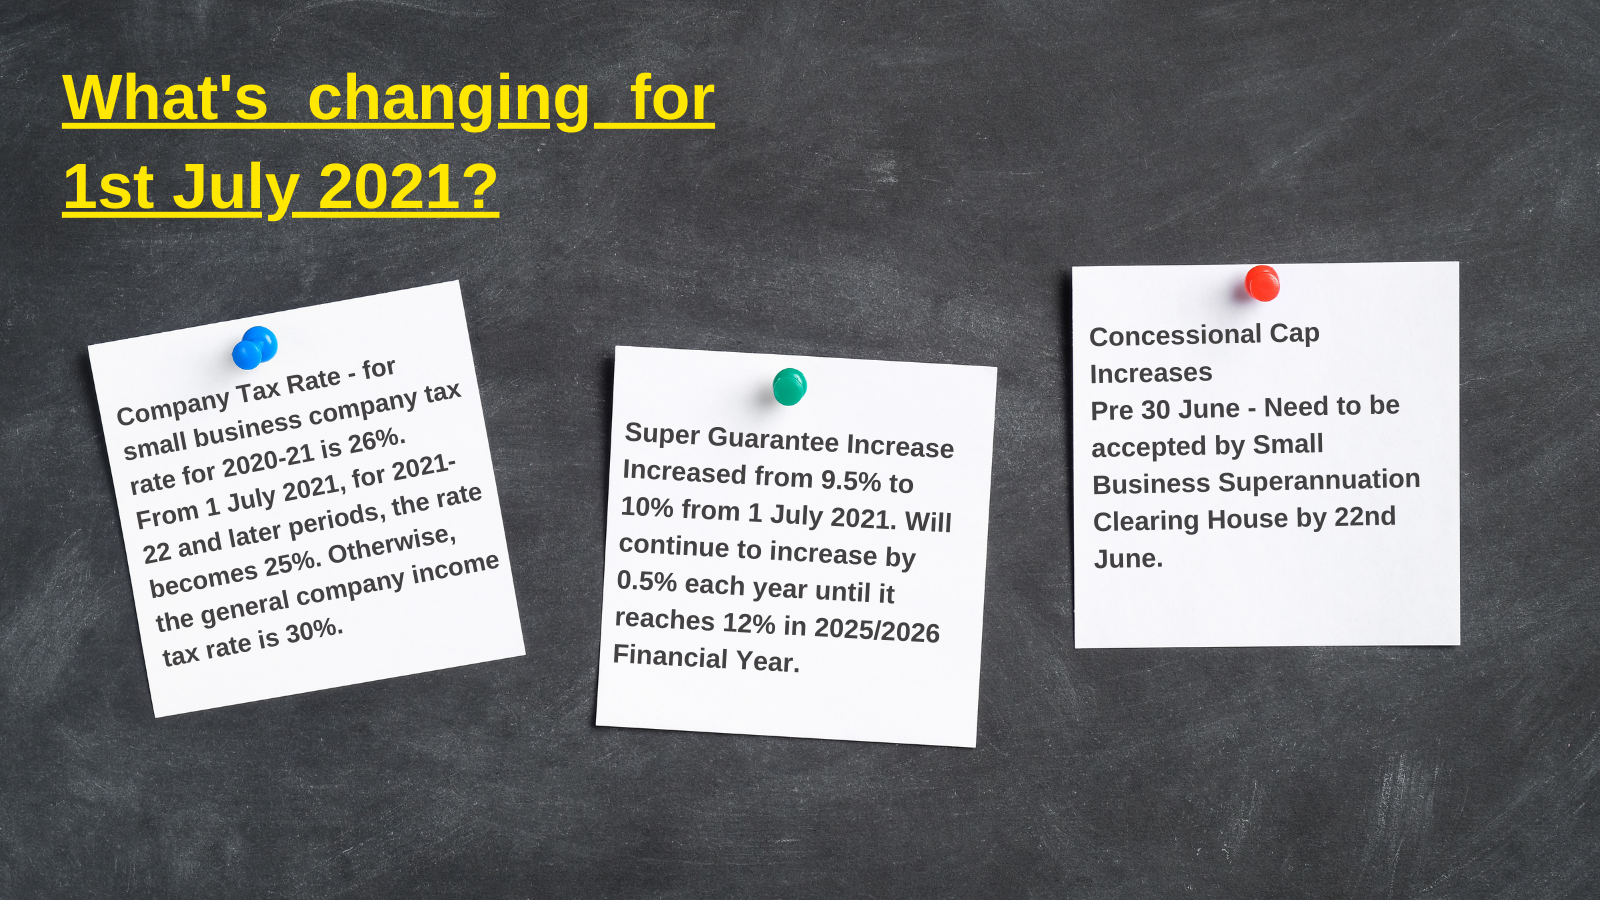 What's Changing for 1st July 2021 - Advivo June 2021 Newsletter Image